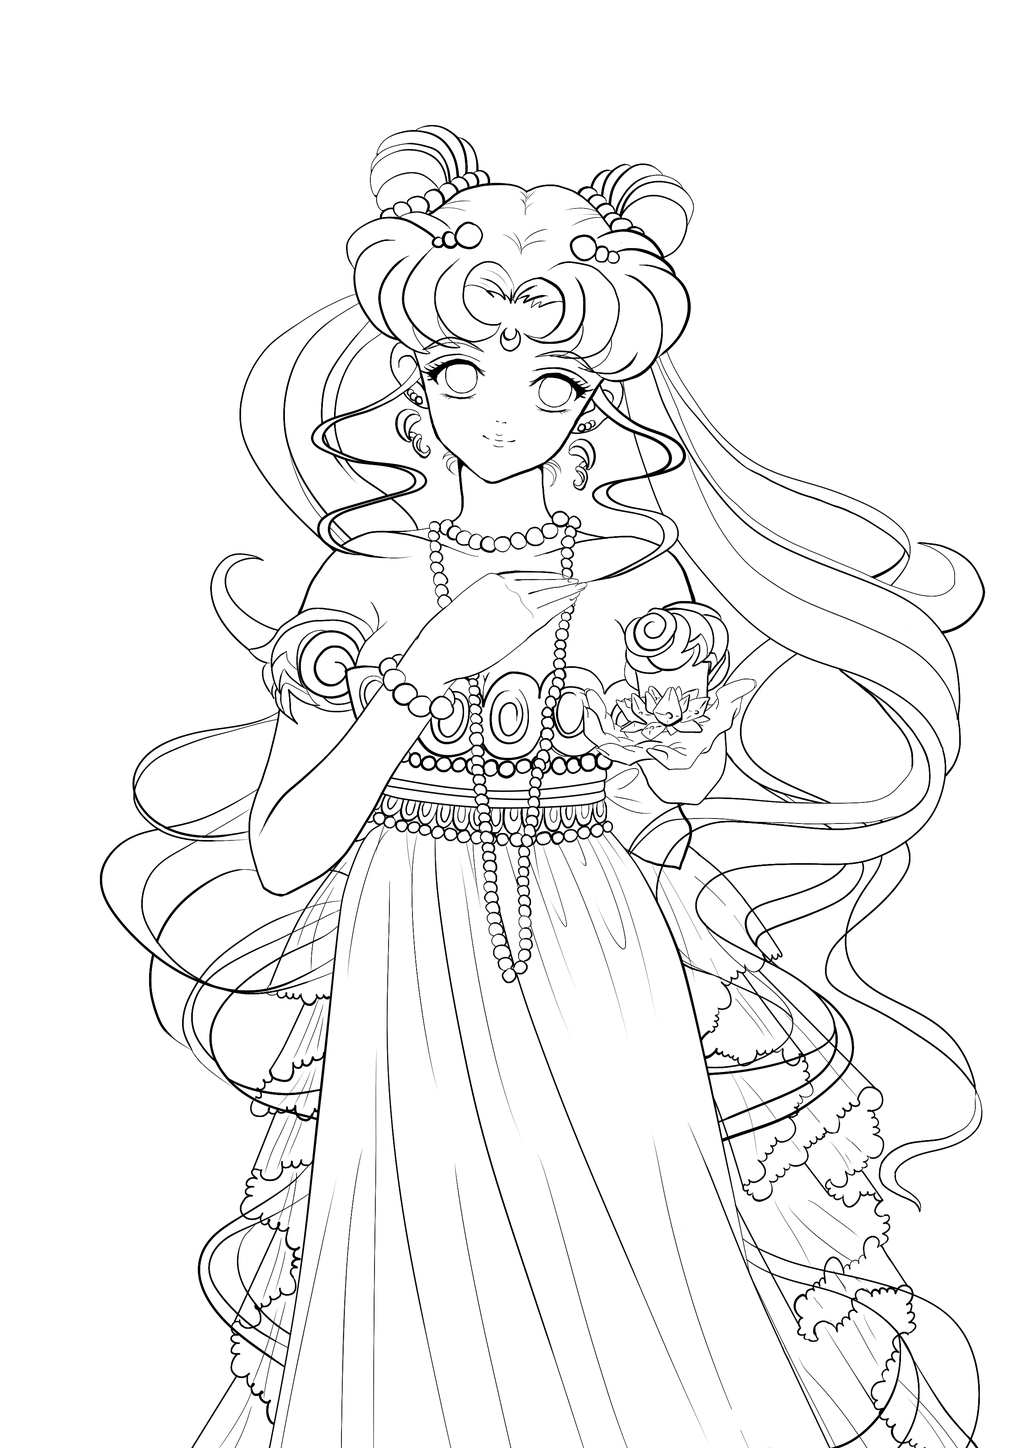 princess serenity line art by 0lesyadeviantartcom on deviantart